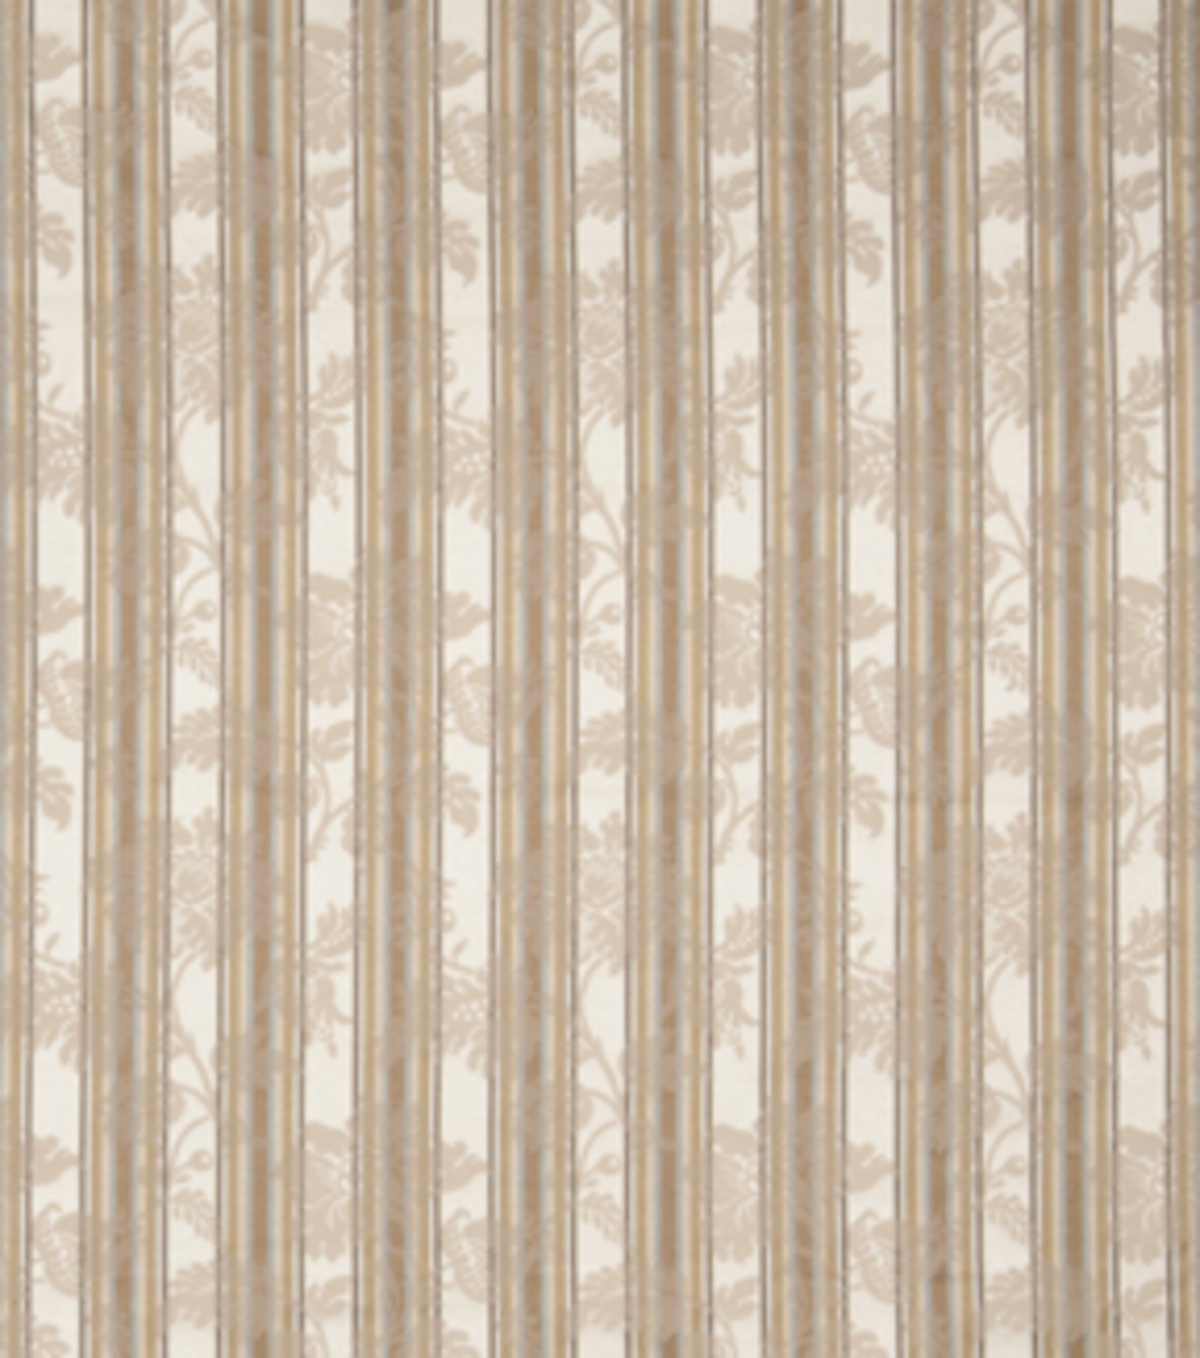 Home Decor 8\u0022x8\u0022 Fabric Swatch-Eaton Square Prestige Aegean